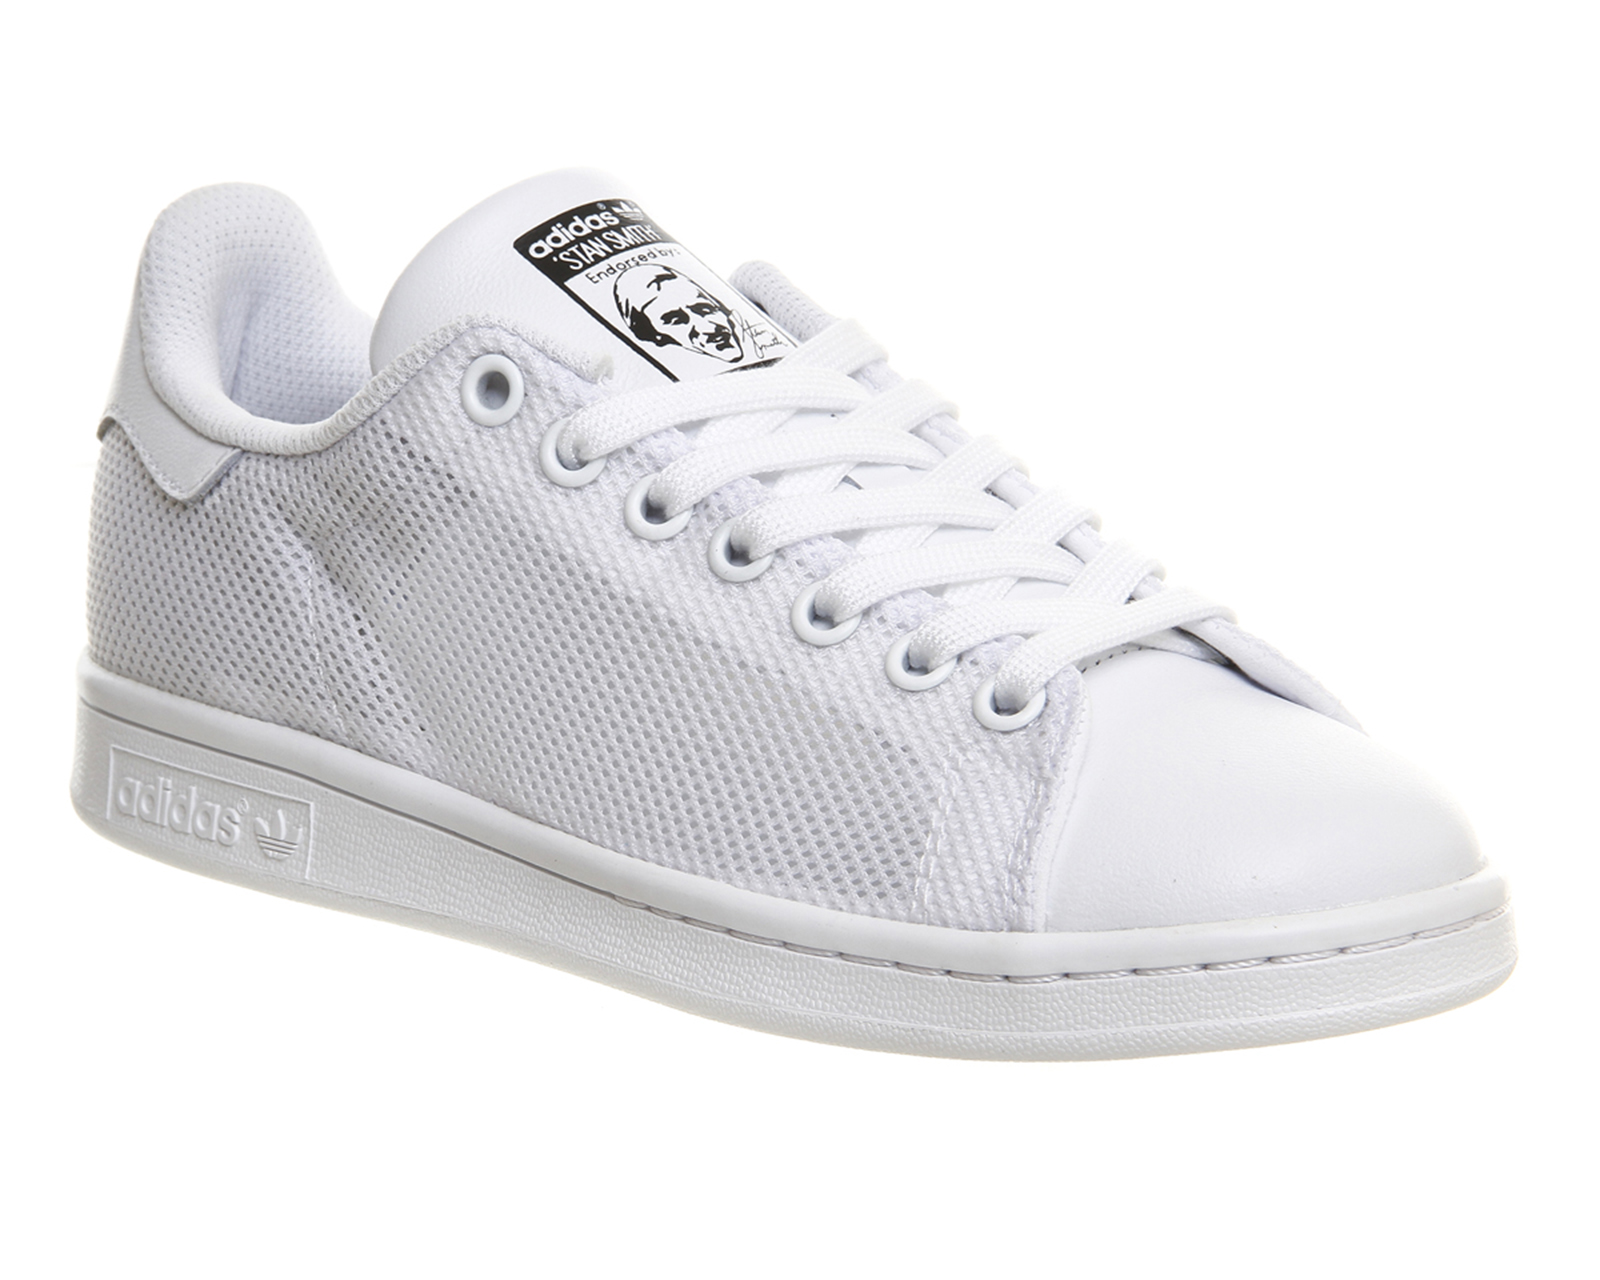 Stan Smith Adidas Herren